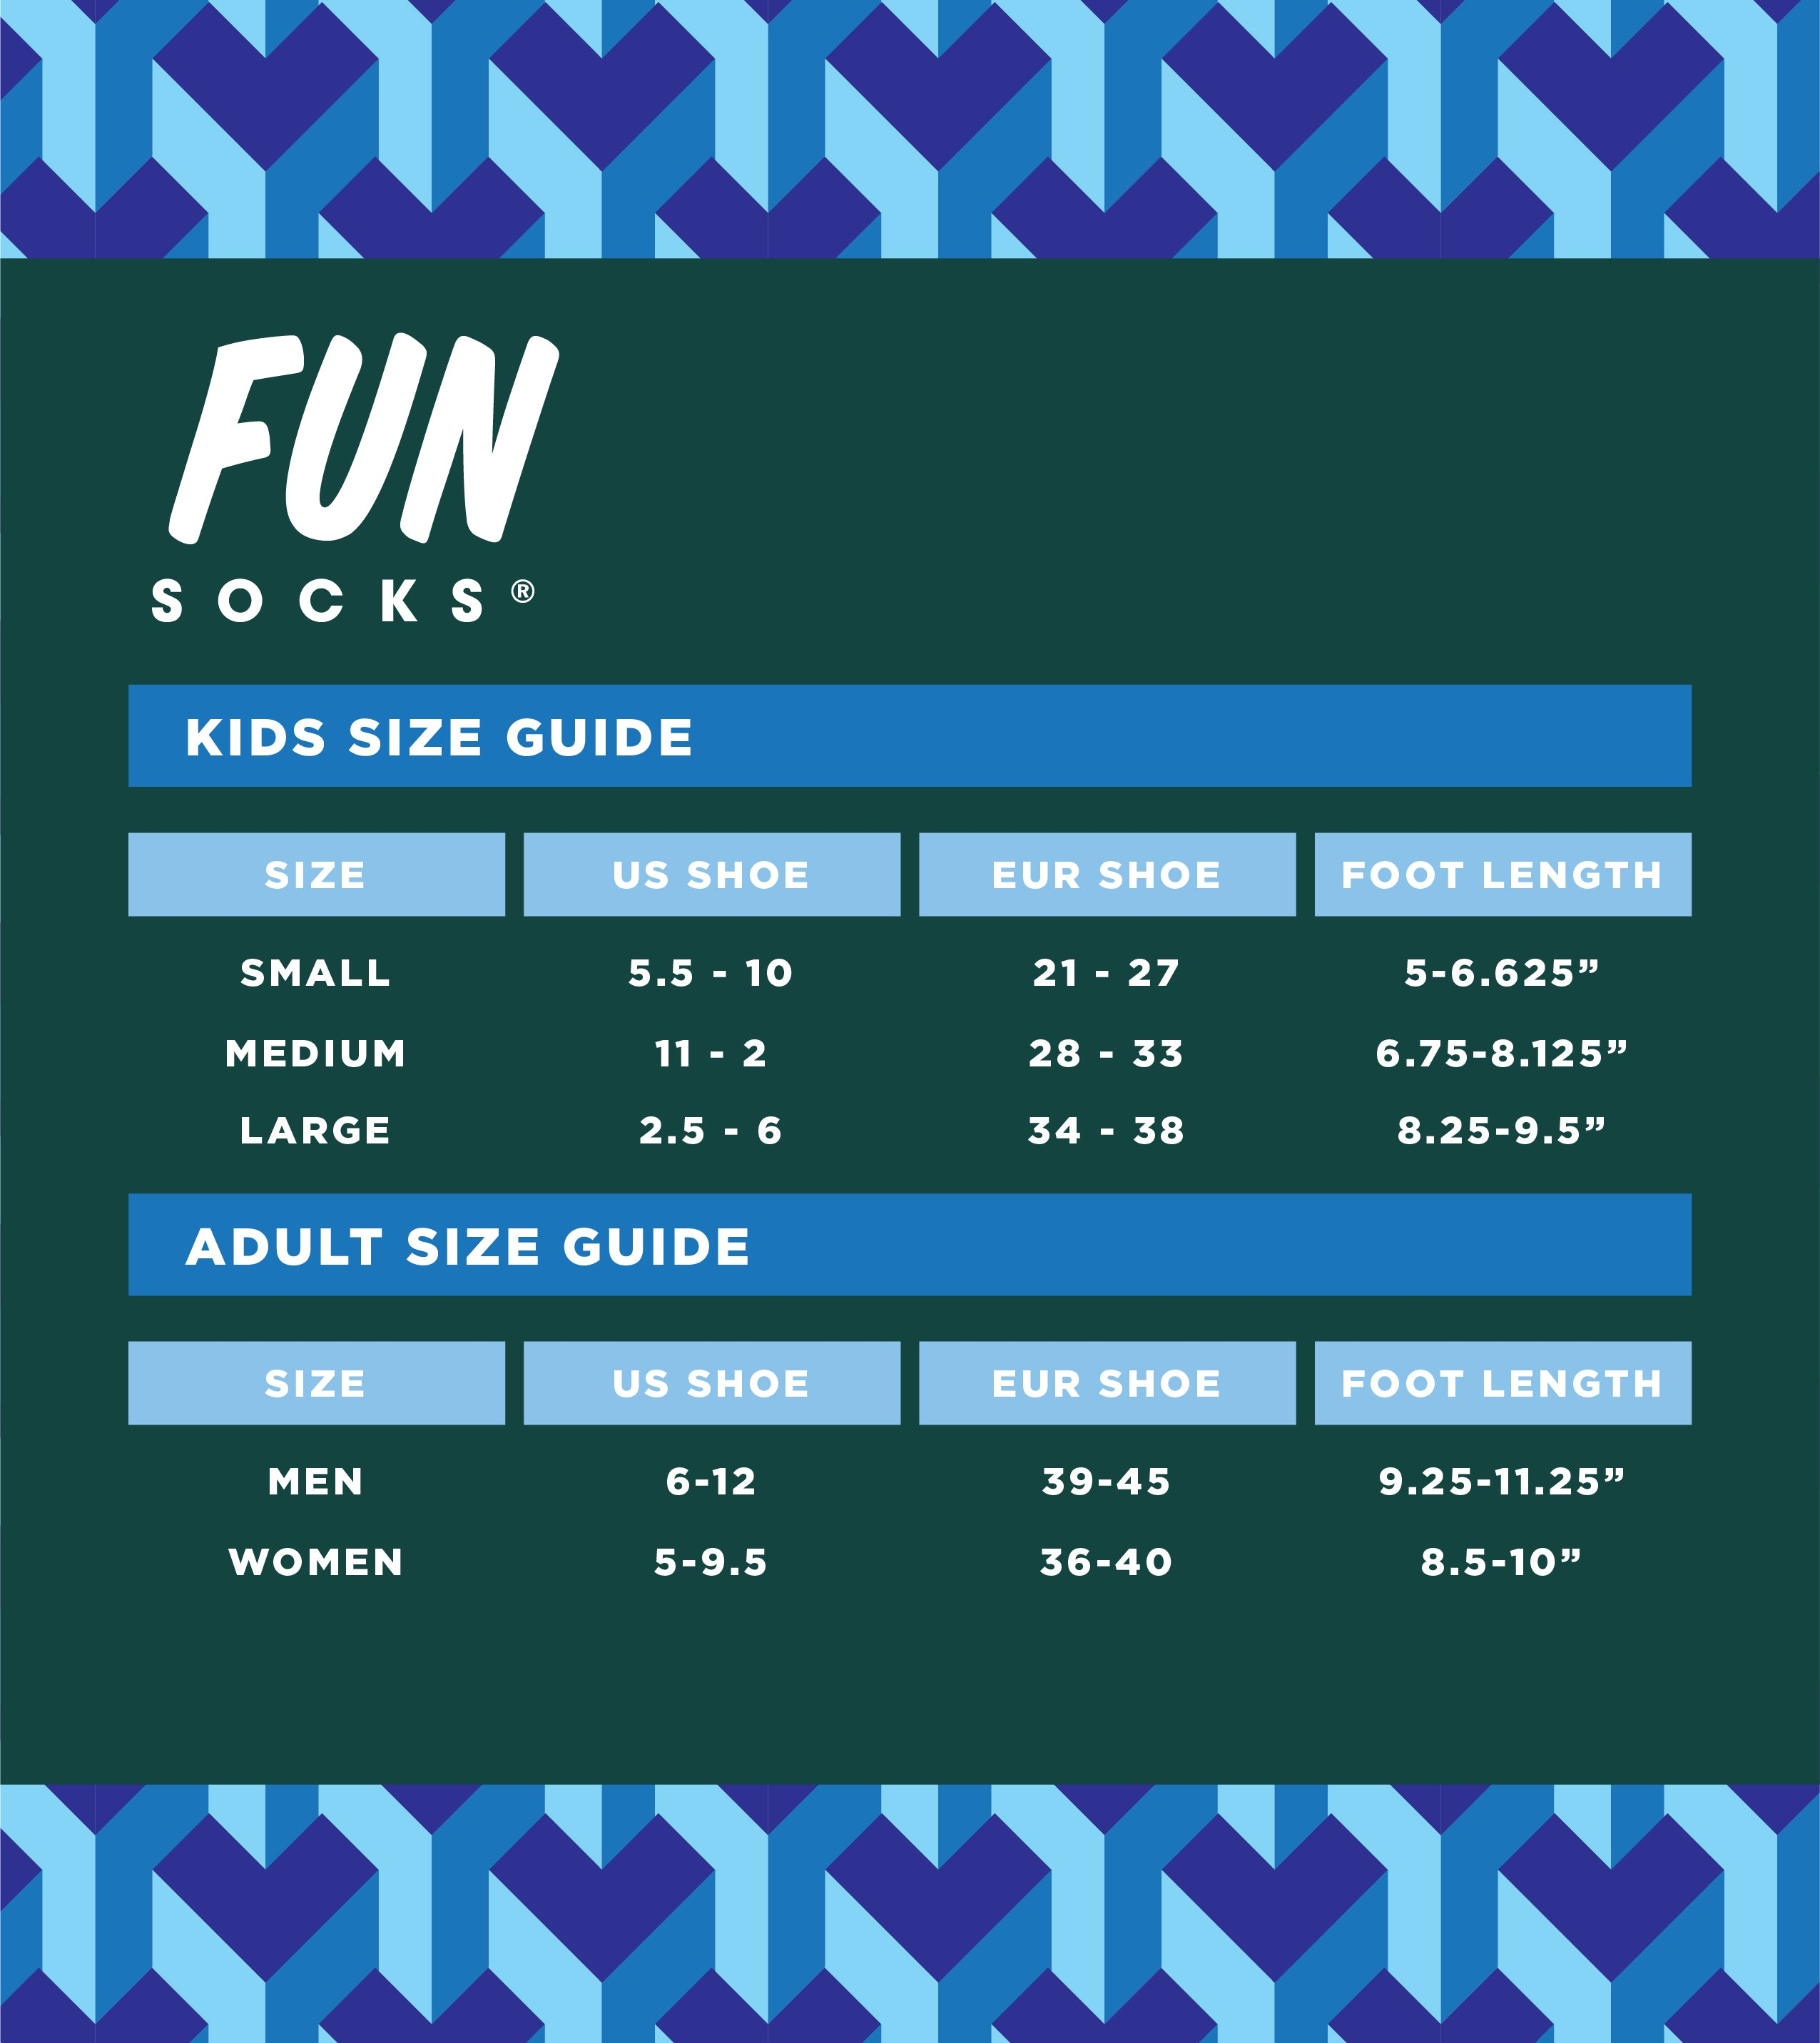 Fun Socks Fit Guide